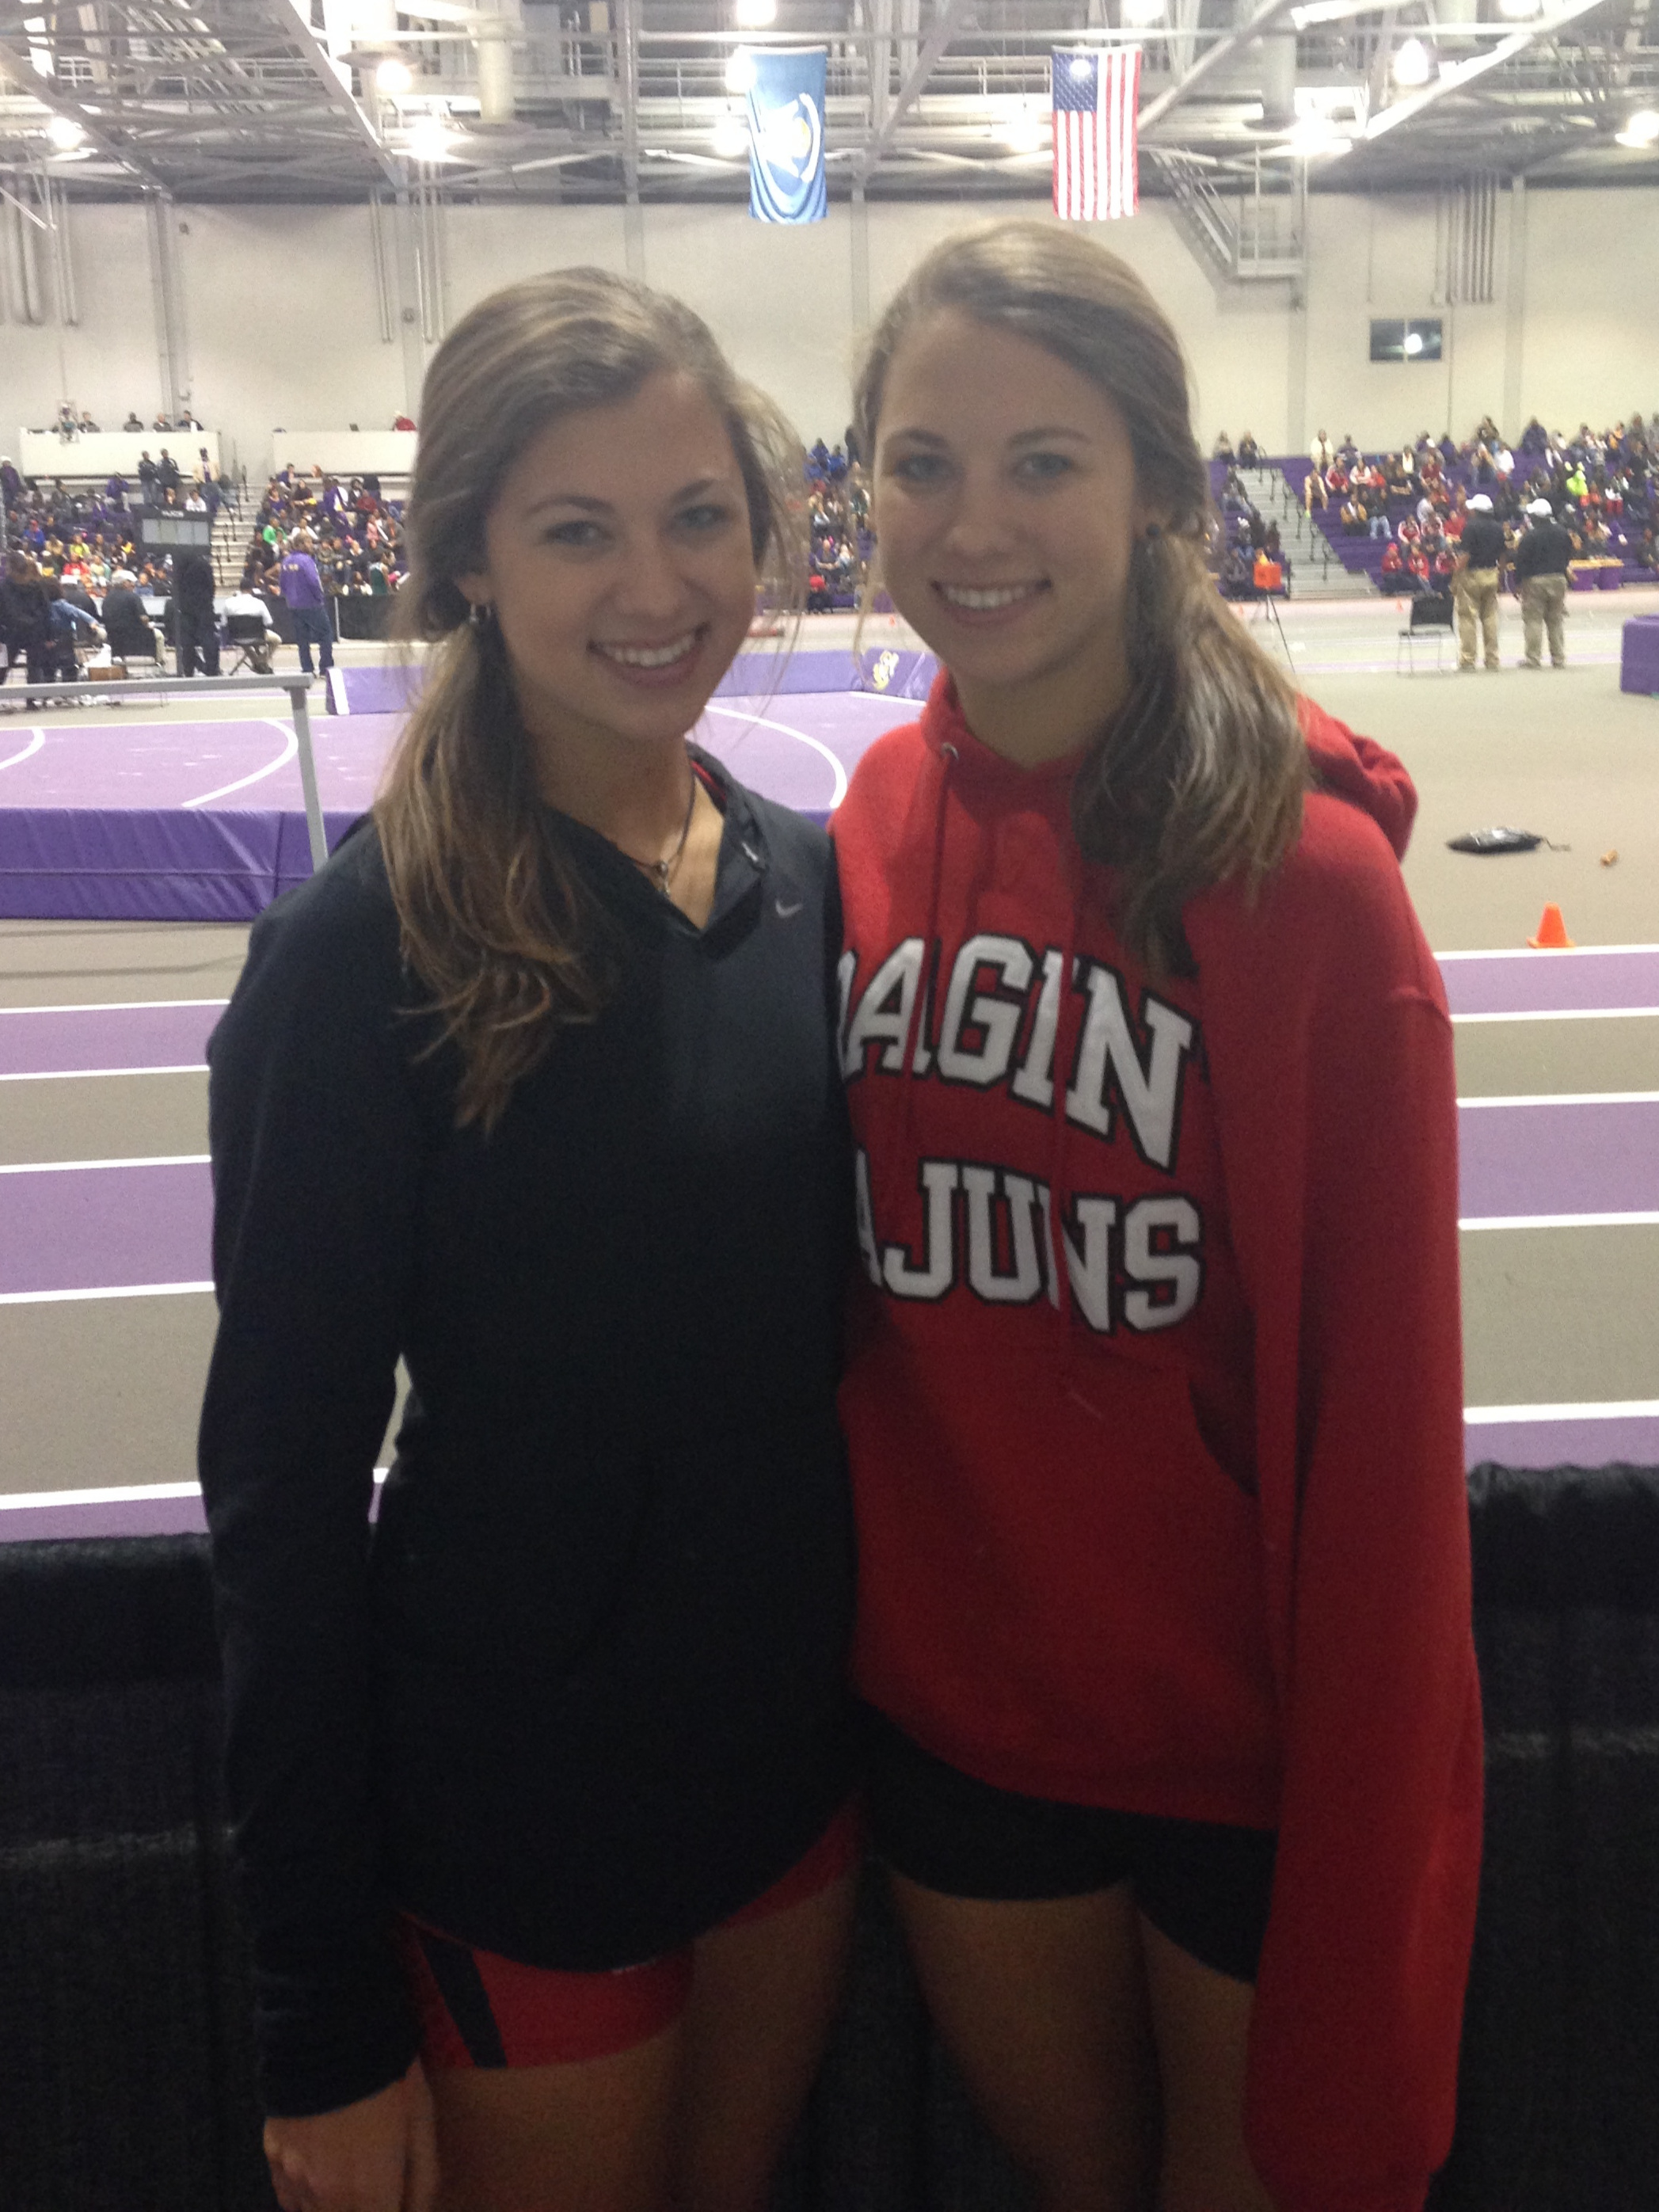 The two of us competing as Ragin Cajuns at a track meet